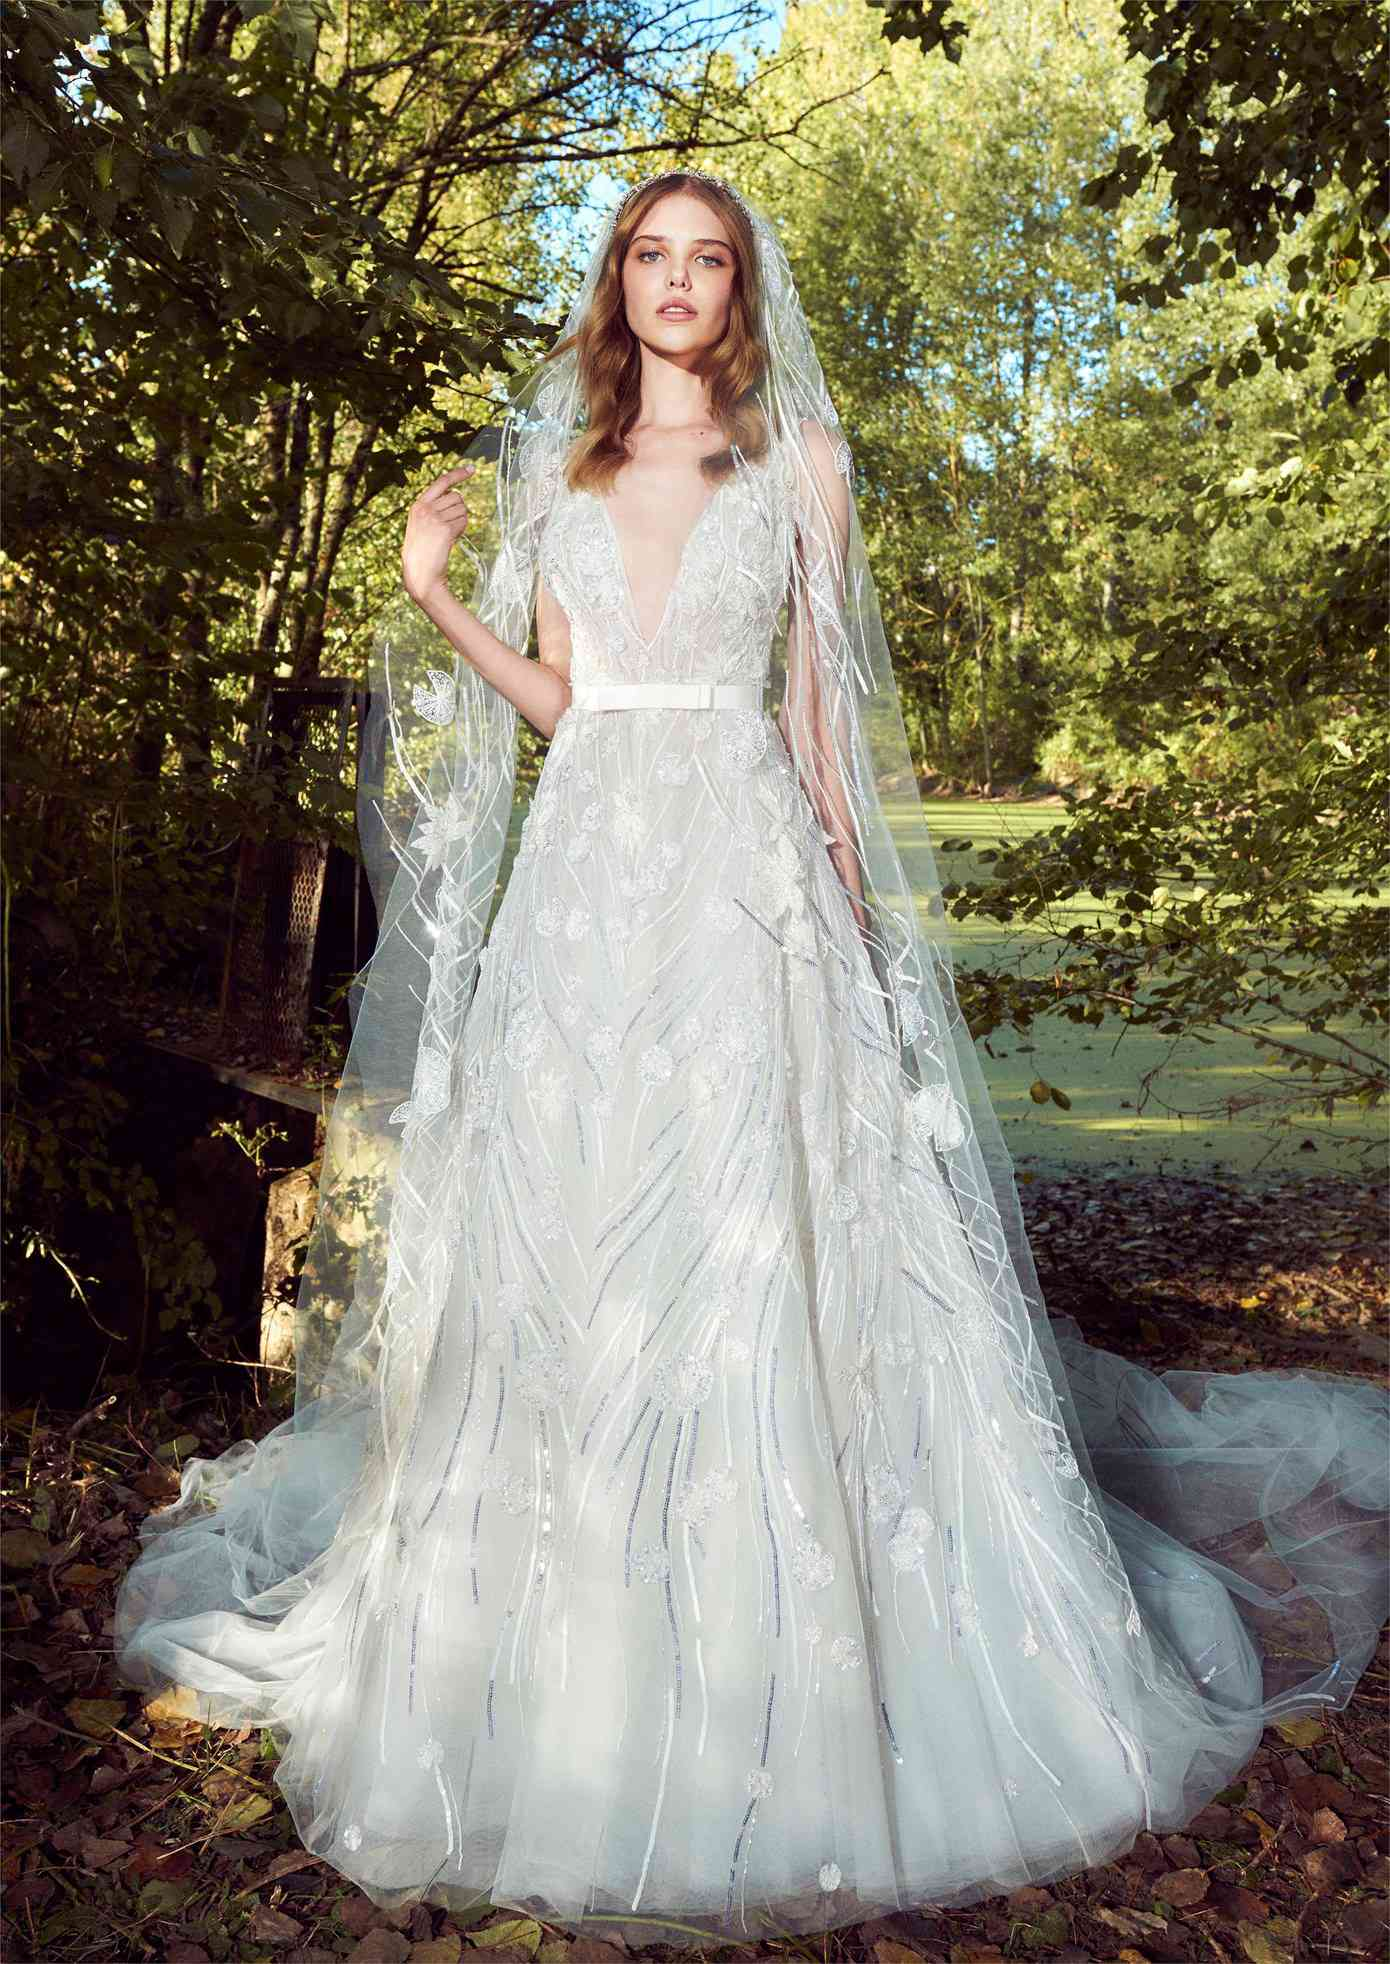 Model in a deep V-neck A-line gown with silver and clear beading and embroidery and a white bow waistband with a matching veil